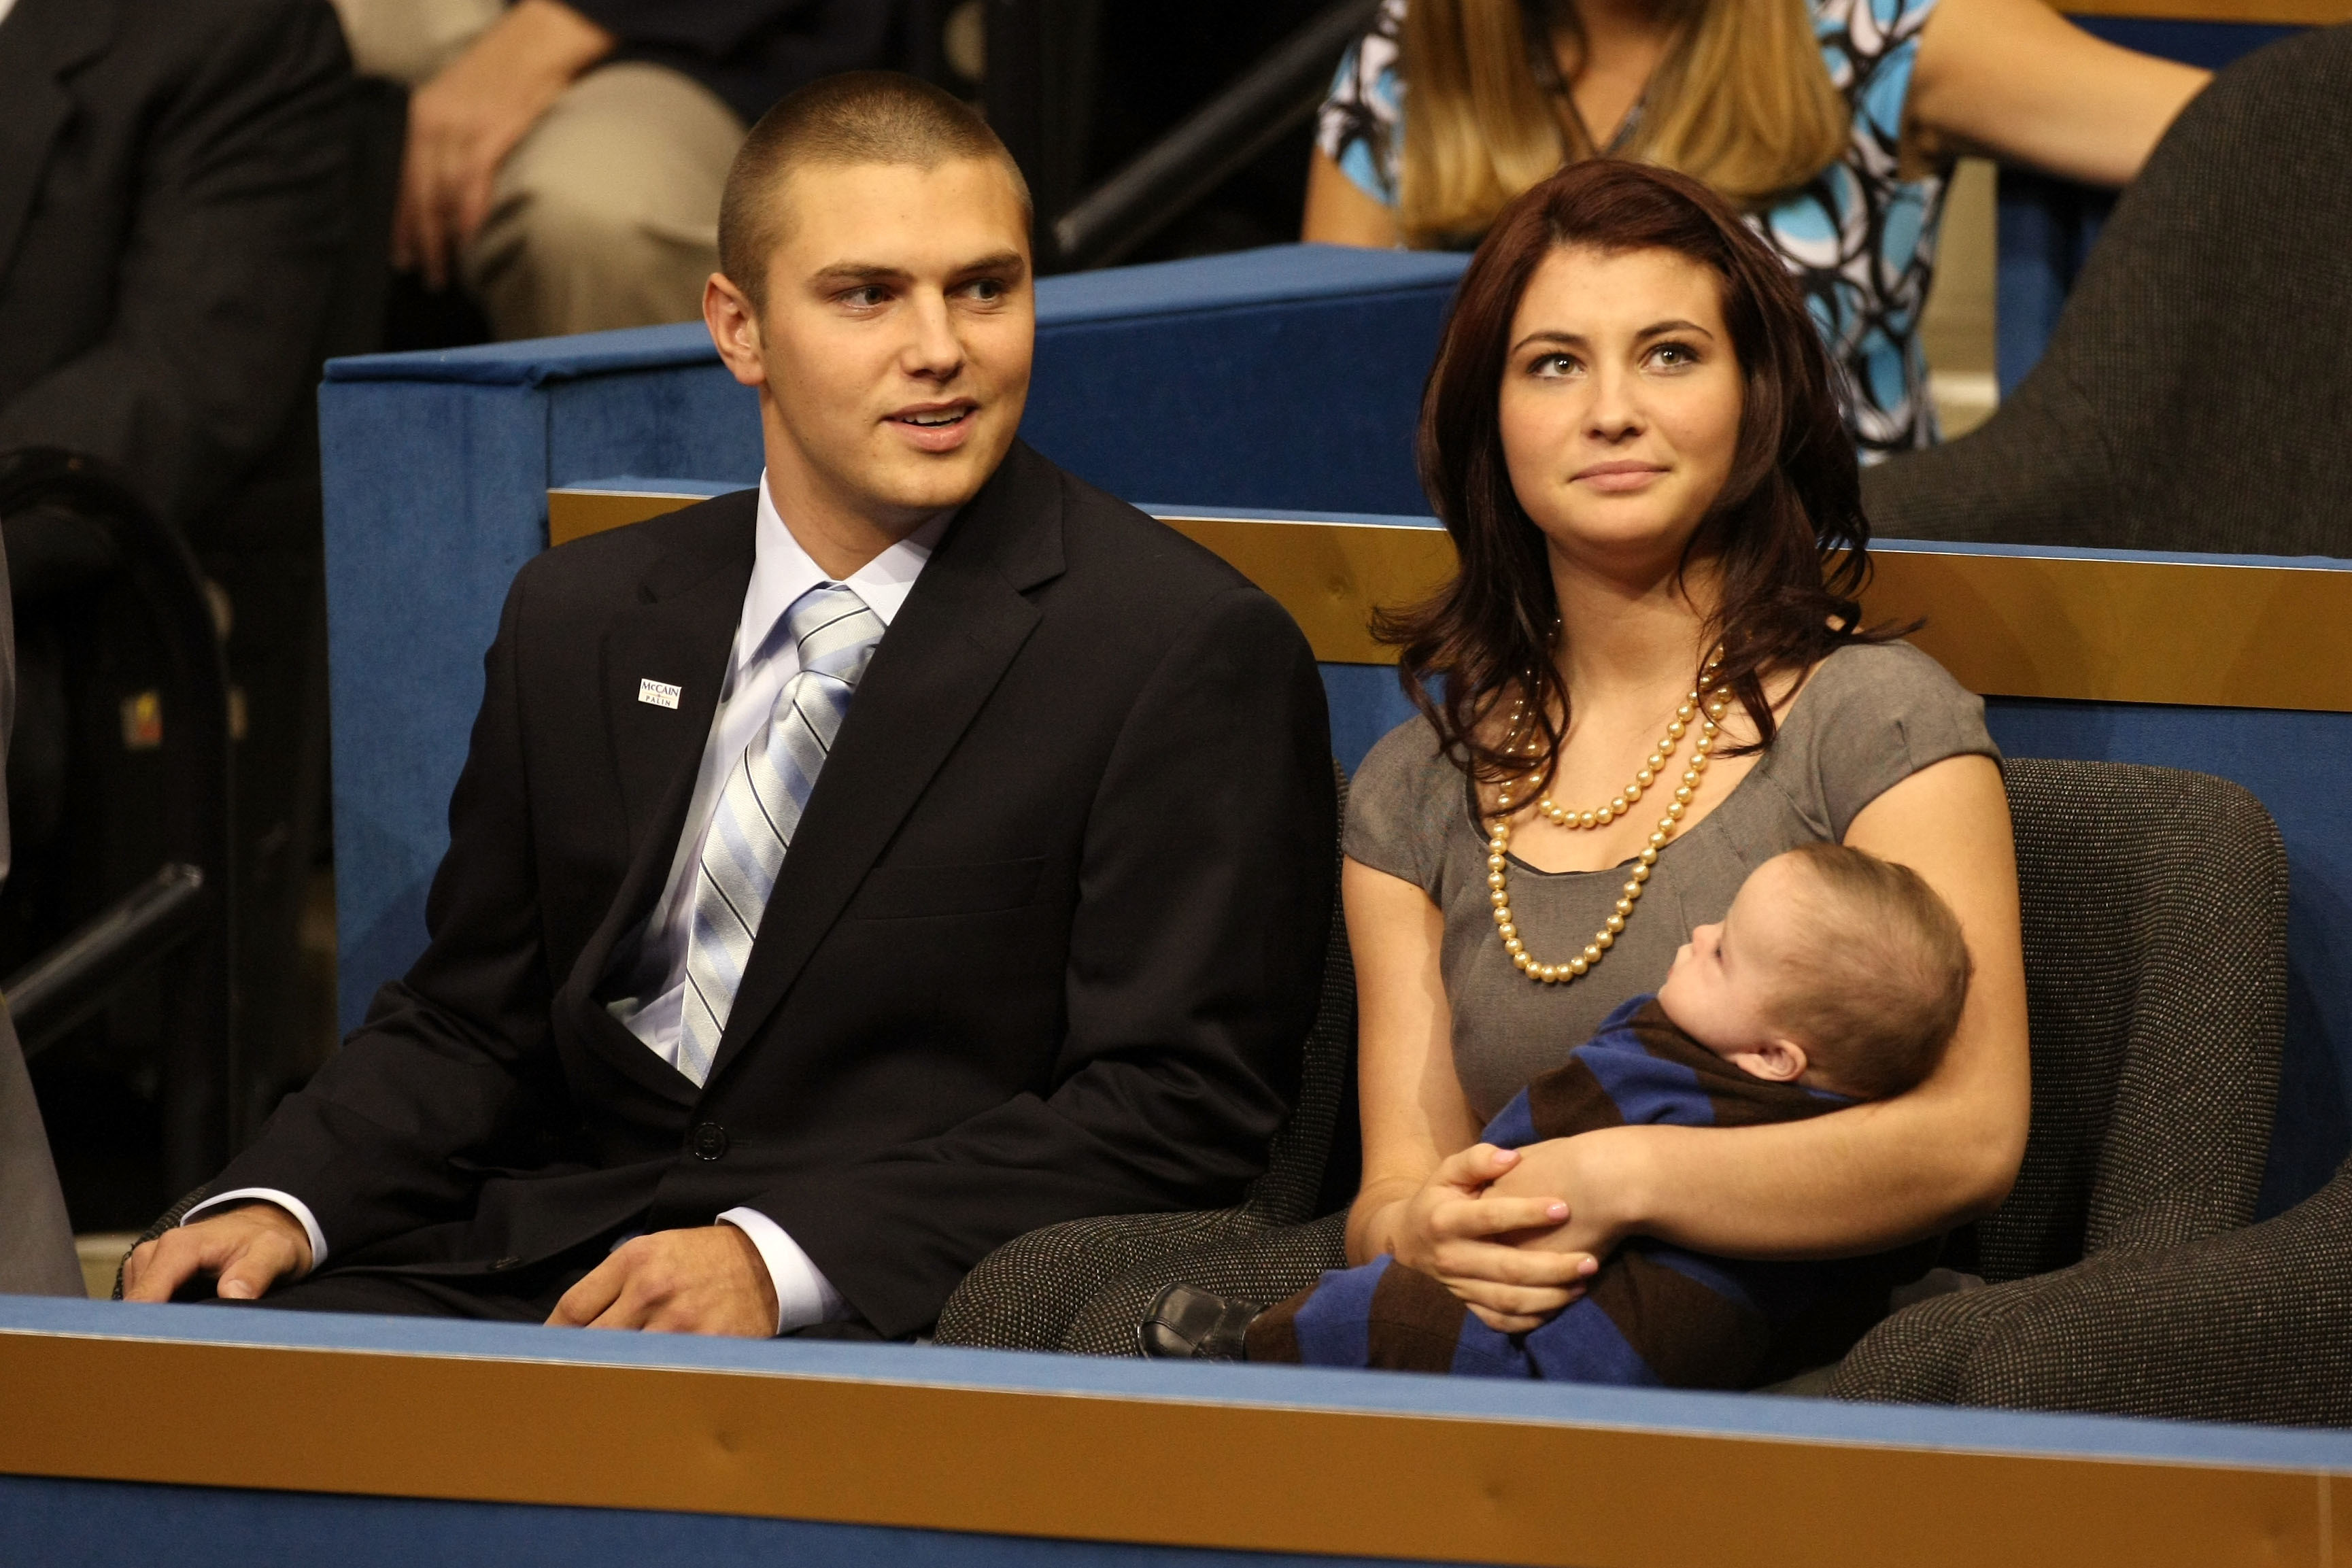 Sarah Palin's son arrested on domestic violence charge